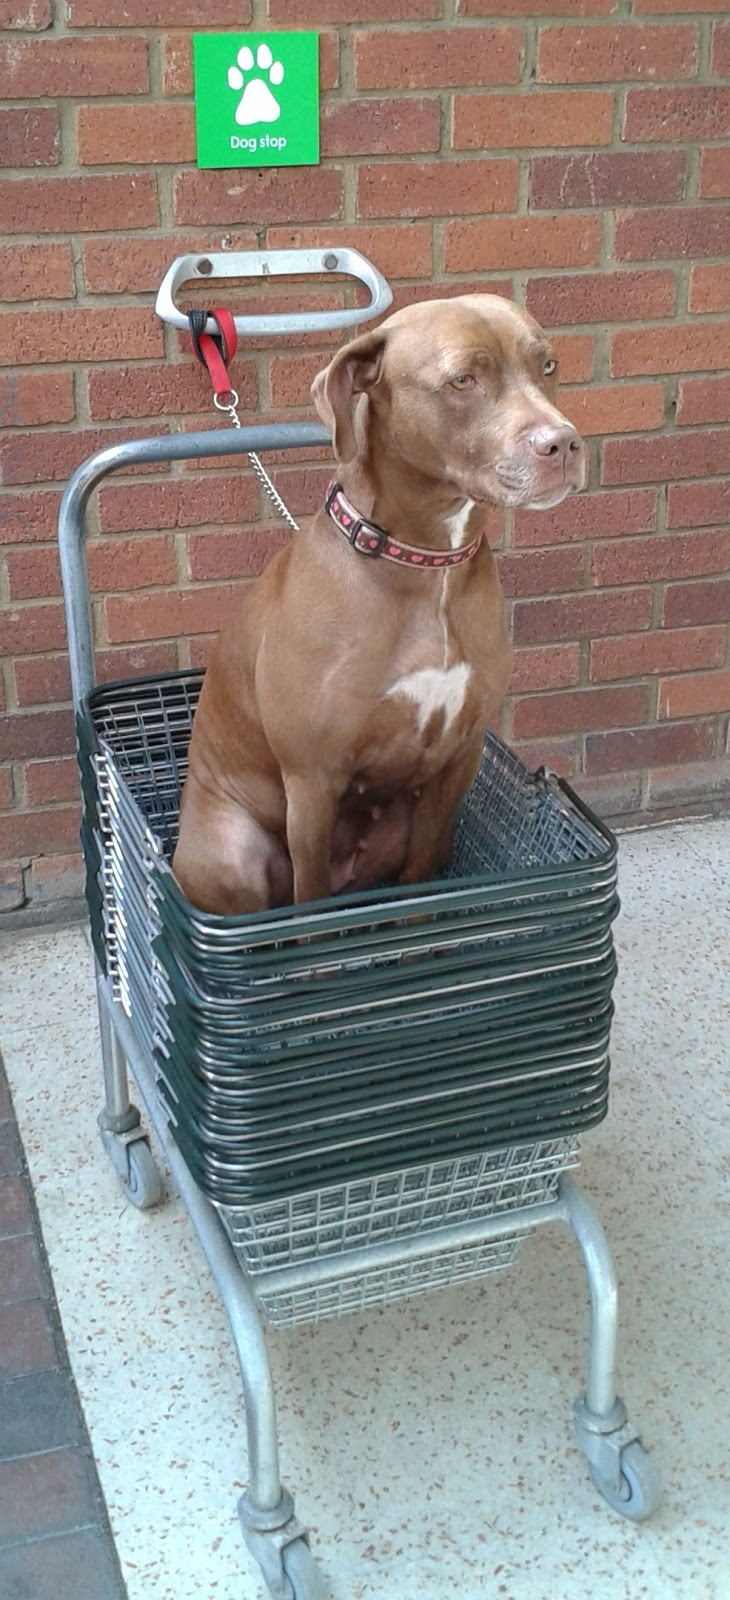 A dog in a stack of shopping baskets